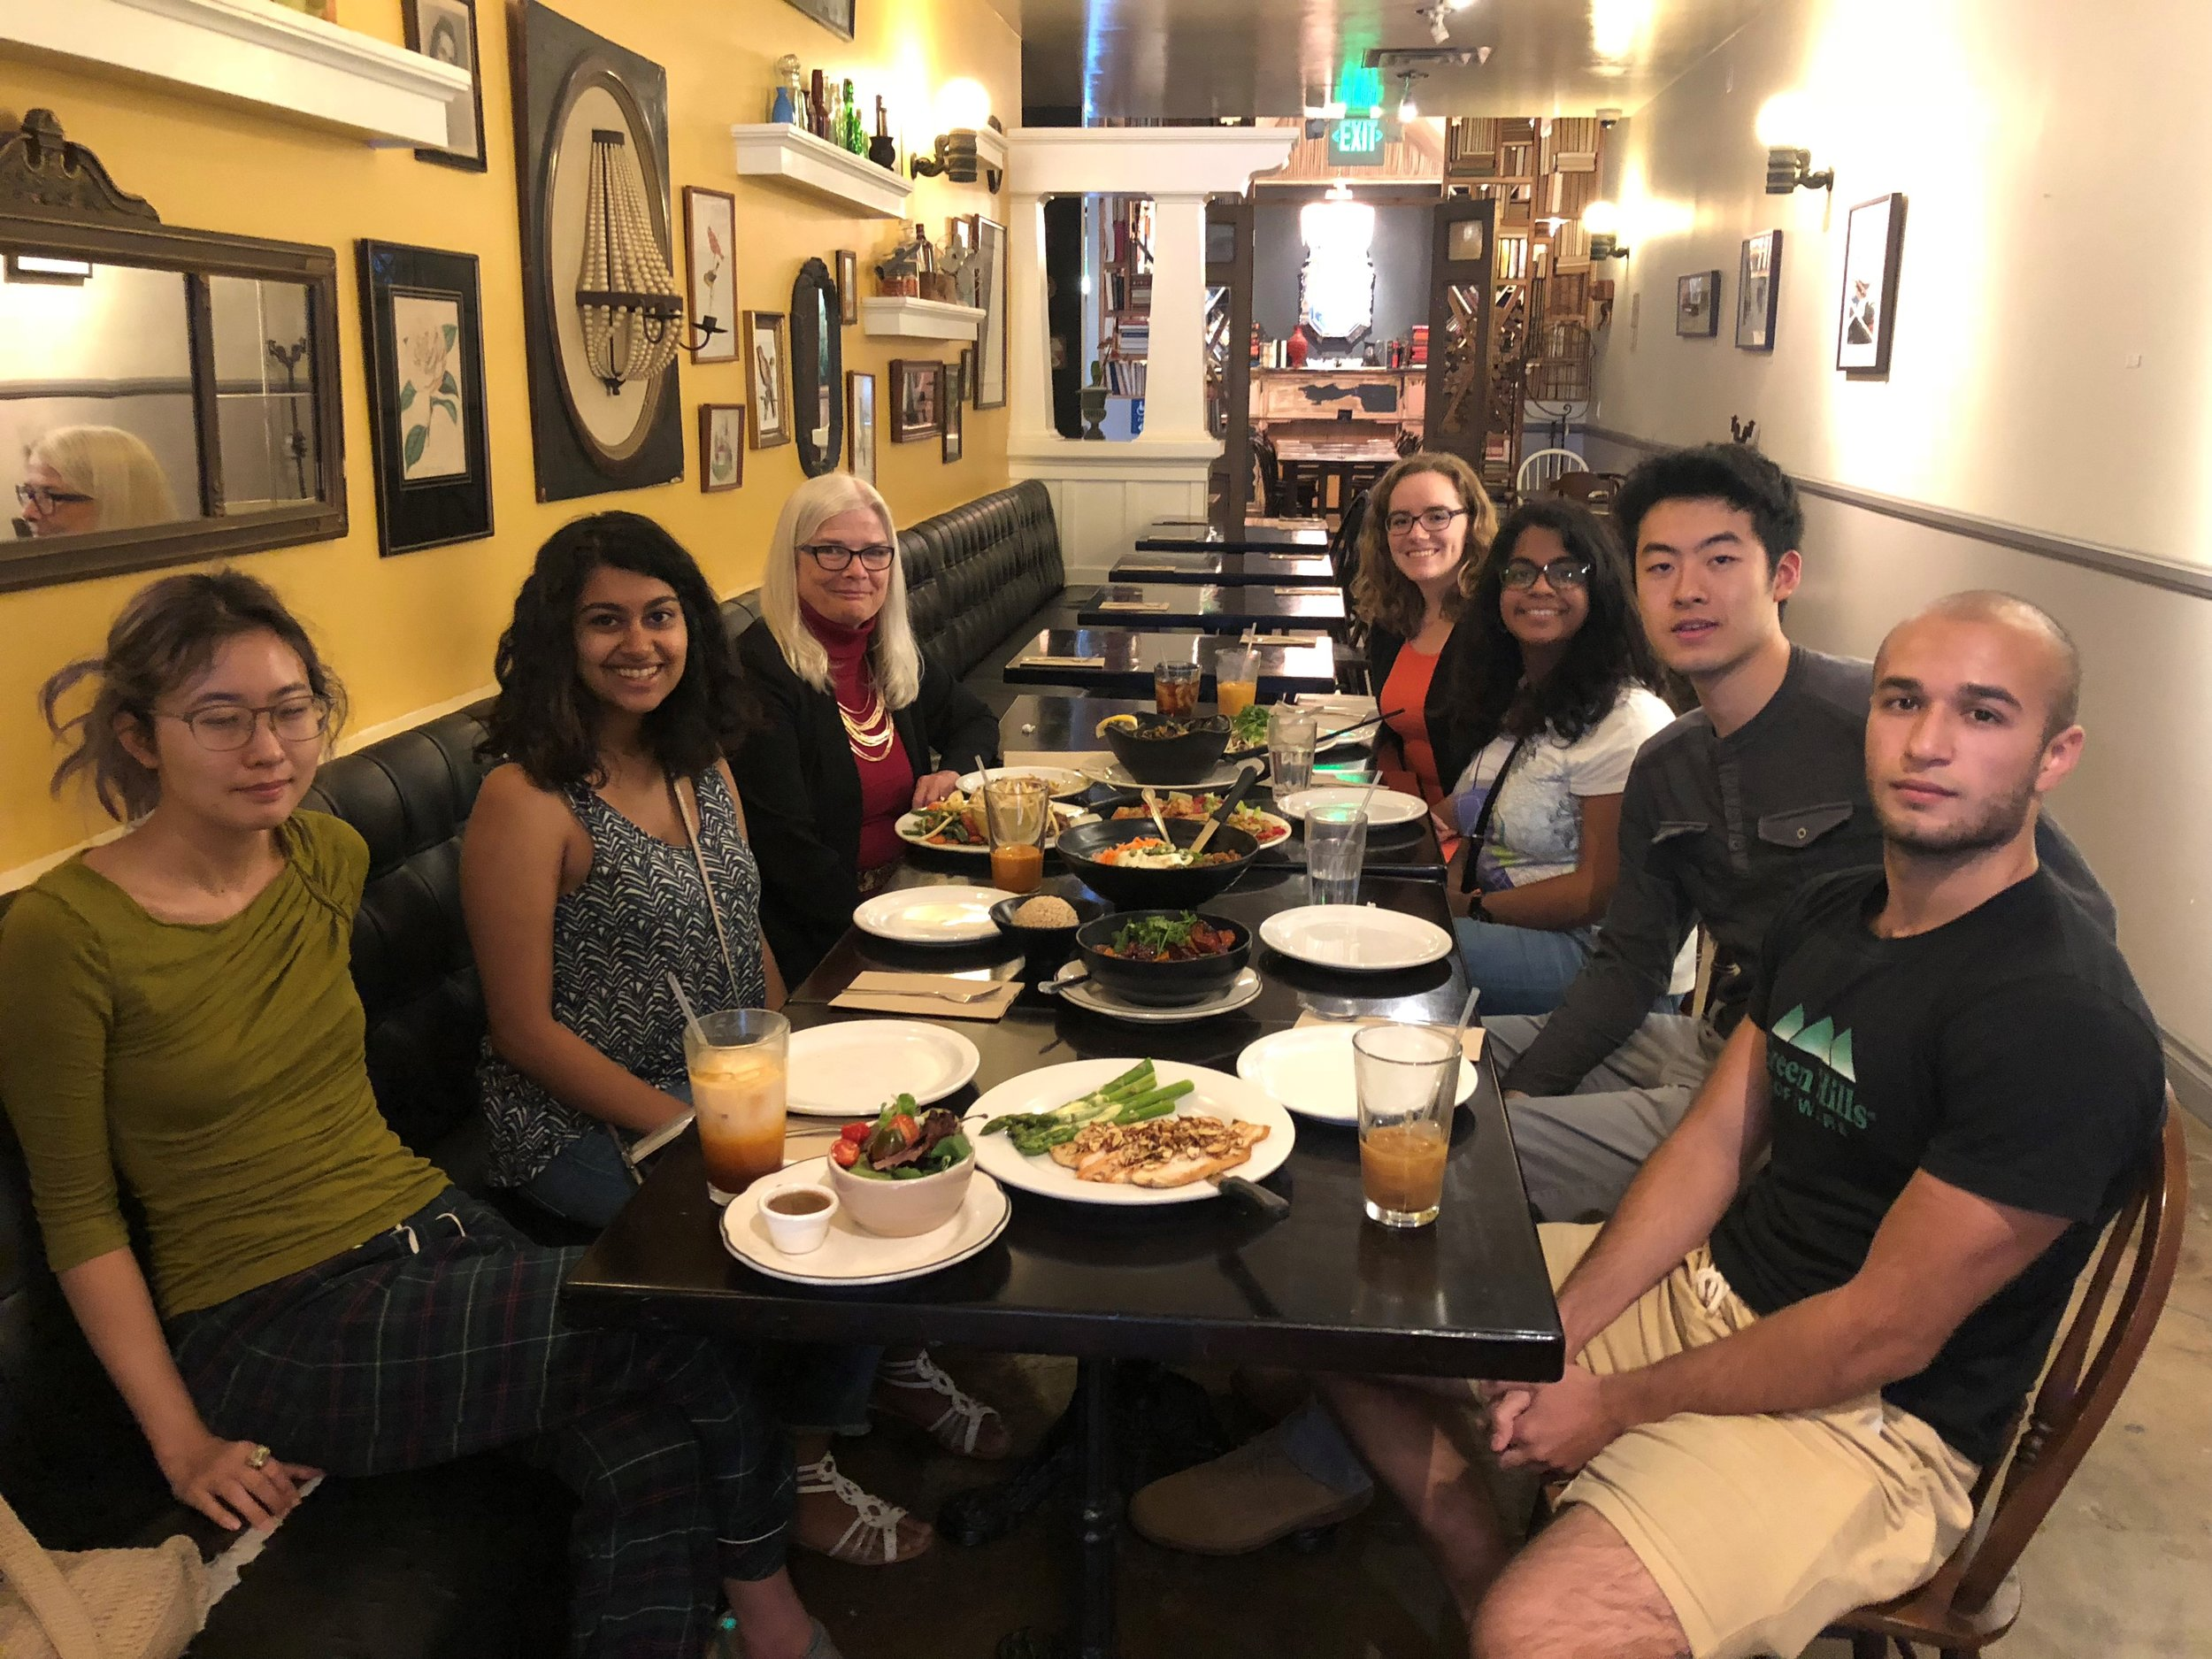 Louise Kirkbride (BS '75, MS '76) hosted 6 undergraduate students for Dinner with Techers at Abricott on Lake on Wednesday, April 25, 2018.